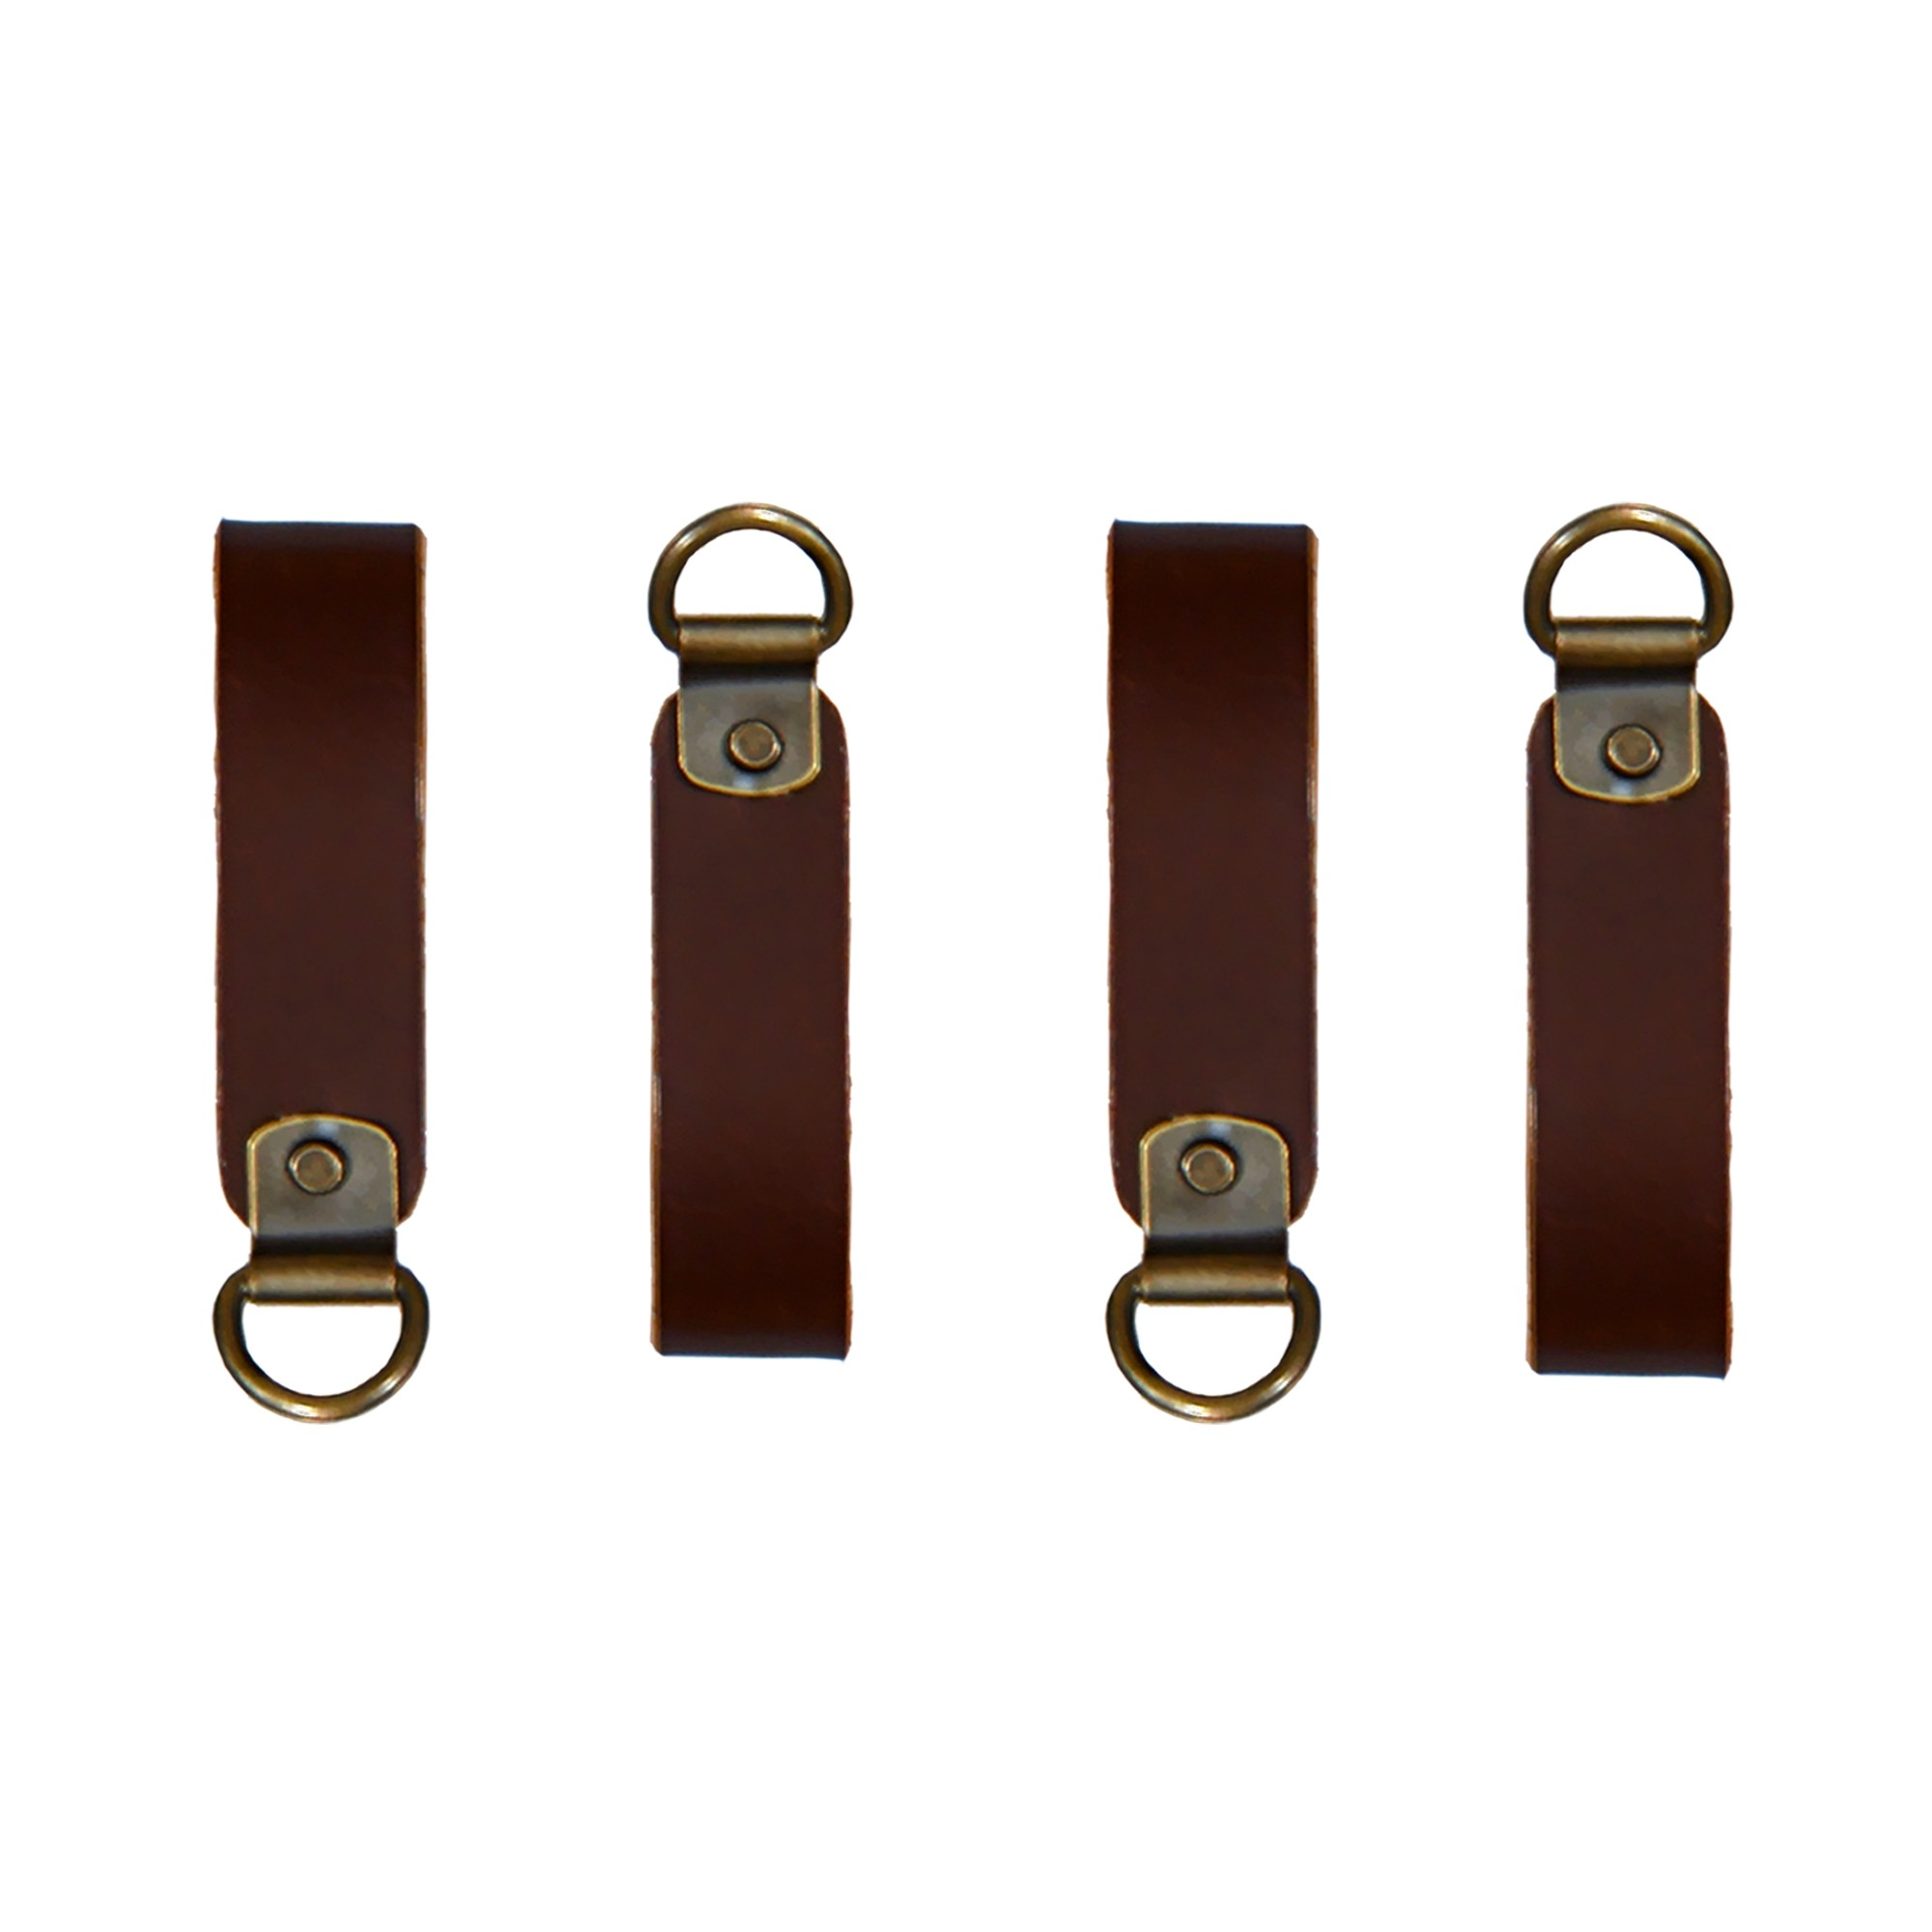 WorkGearUK WG-BL02 Leather D-Ring Loops for suspender attachment set of 4